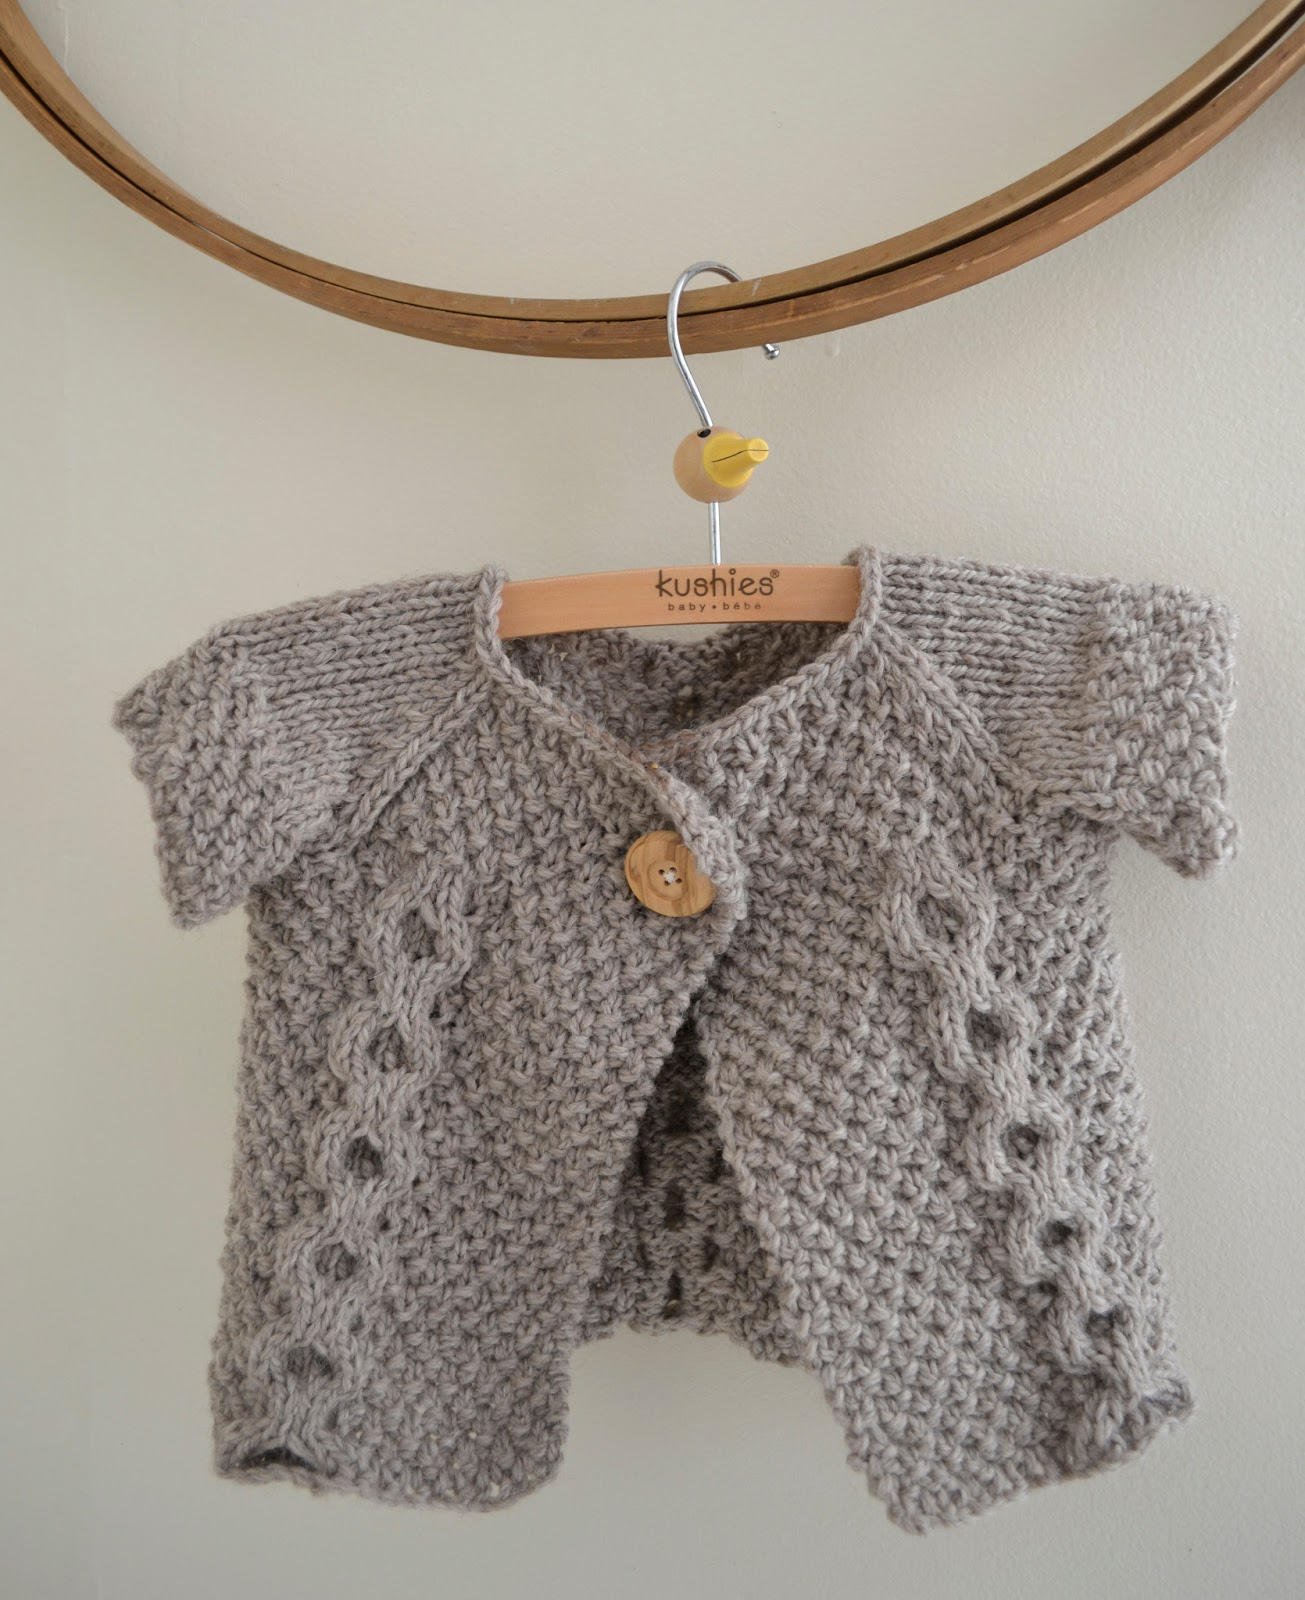 Knitting Patterns With Picture Instructions : Baby Sweater Knitting Pattern A Knitting Blog